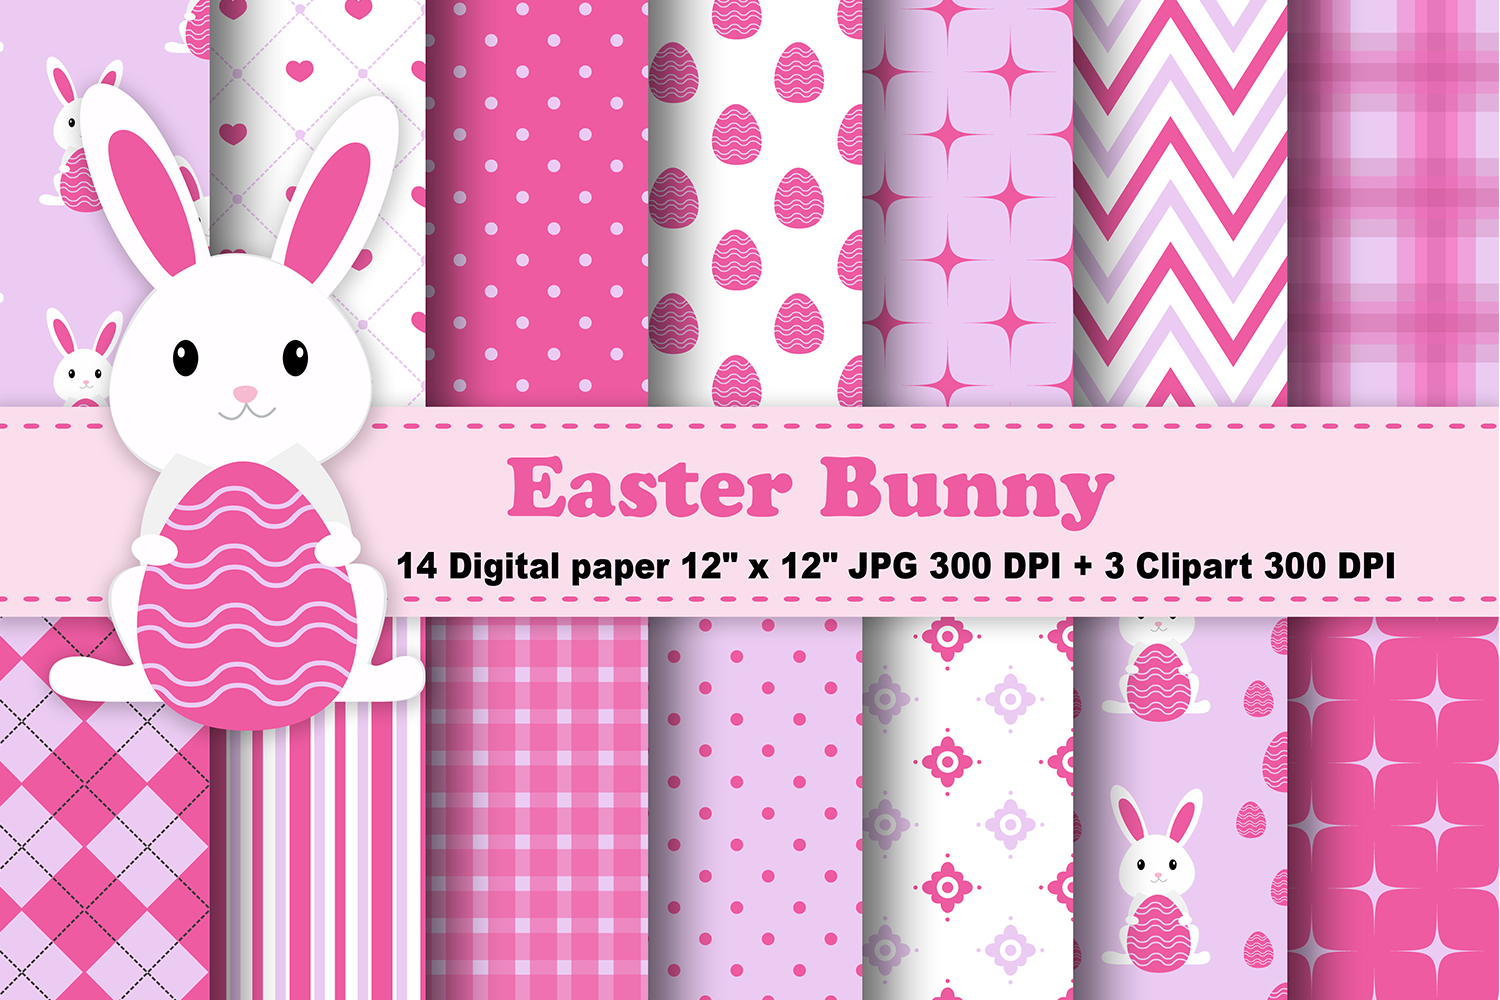 Download Free Easter Bunny Digital Paper Graphic By Cosmosfineart Creative for Cricut Explore, Silhouette and other cutting machines.